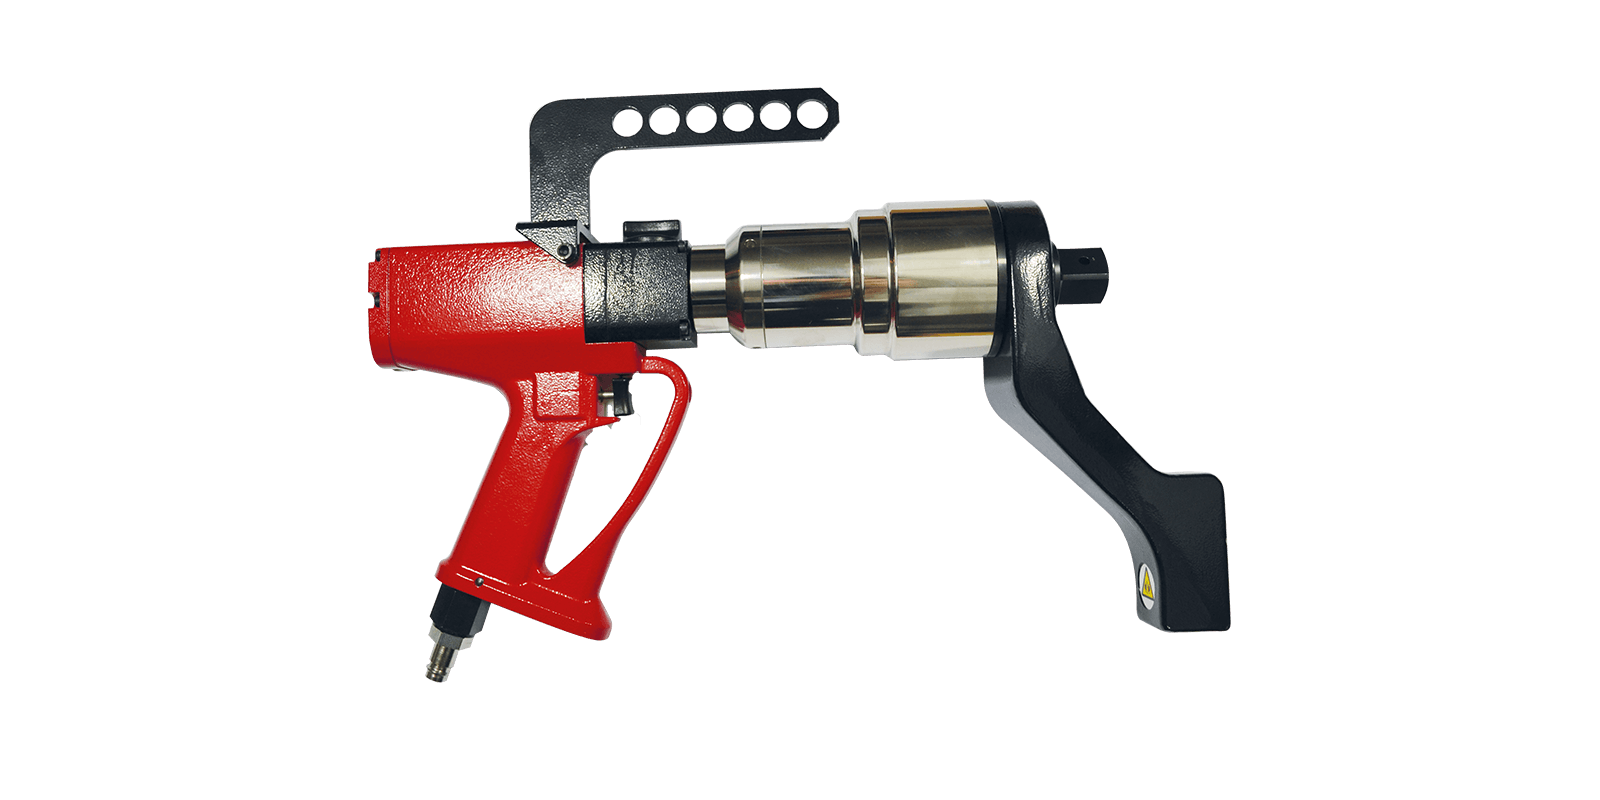 Pistol Grip Pneutorque Multiplier